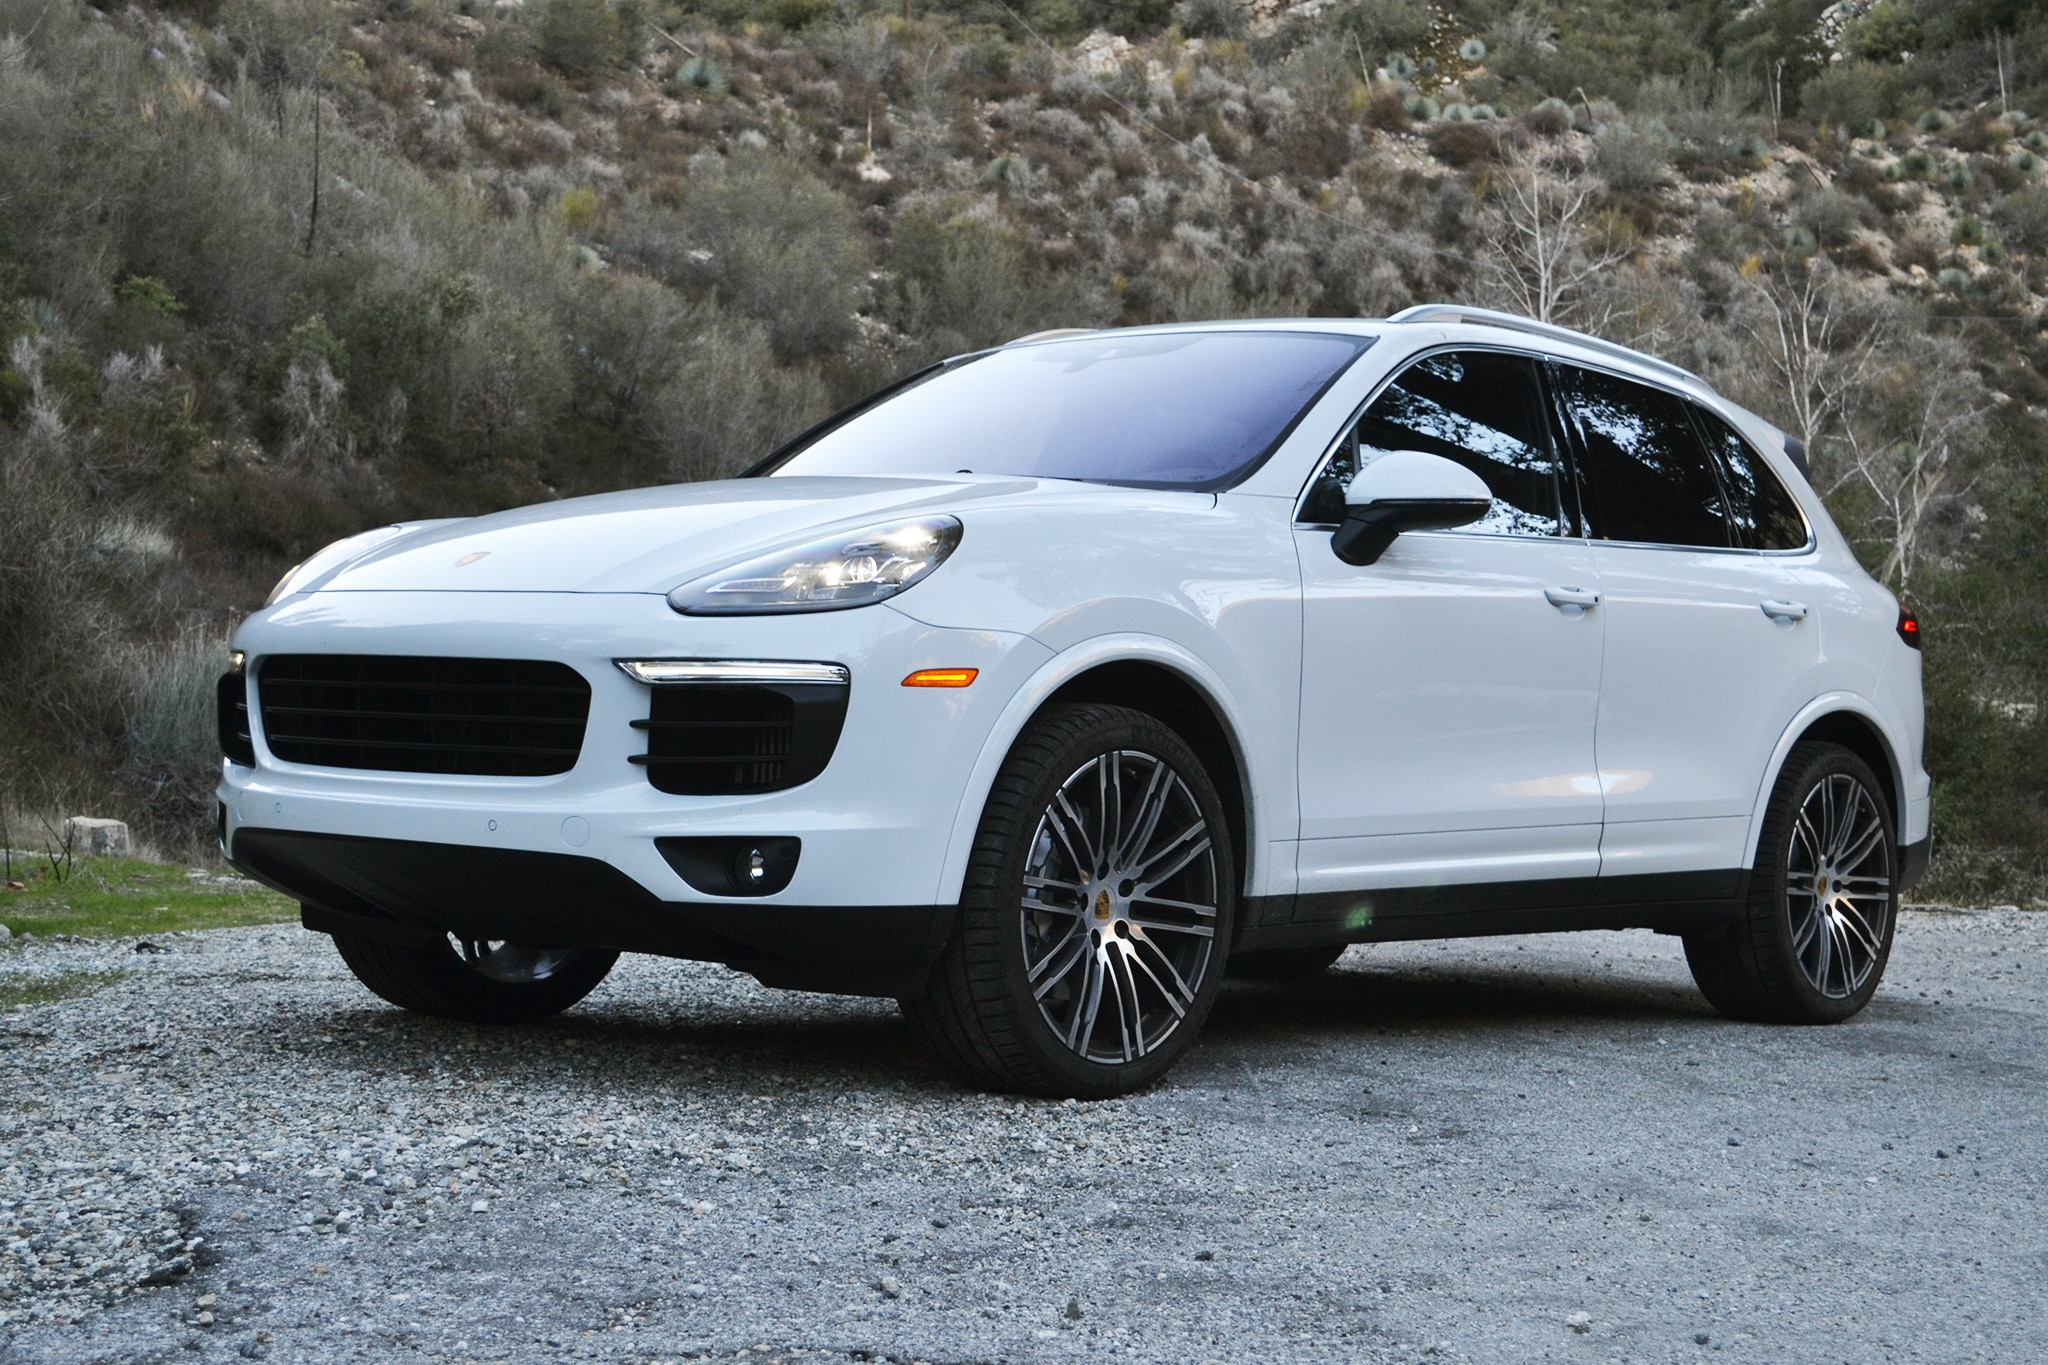 2017 Porsche Cayenne S Specifications